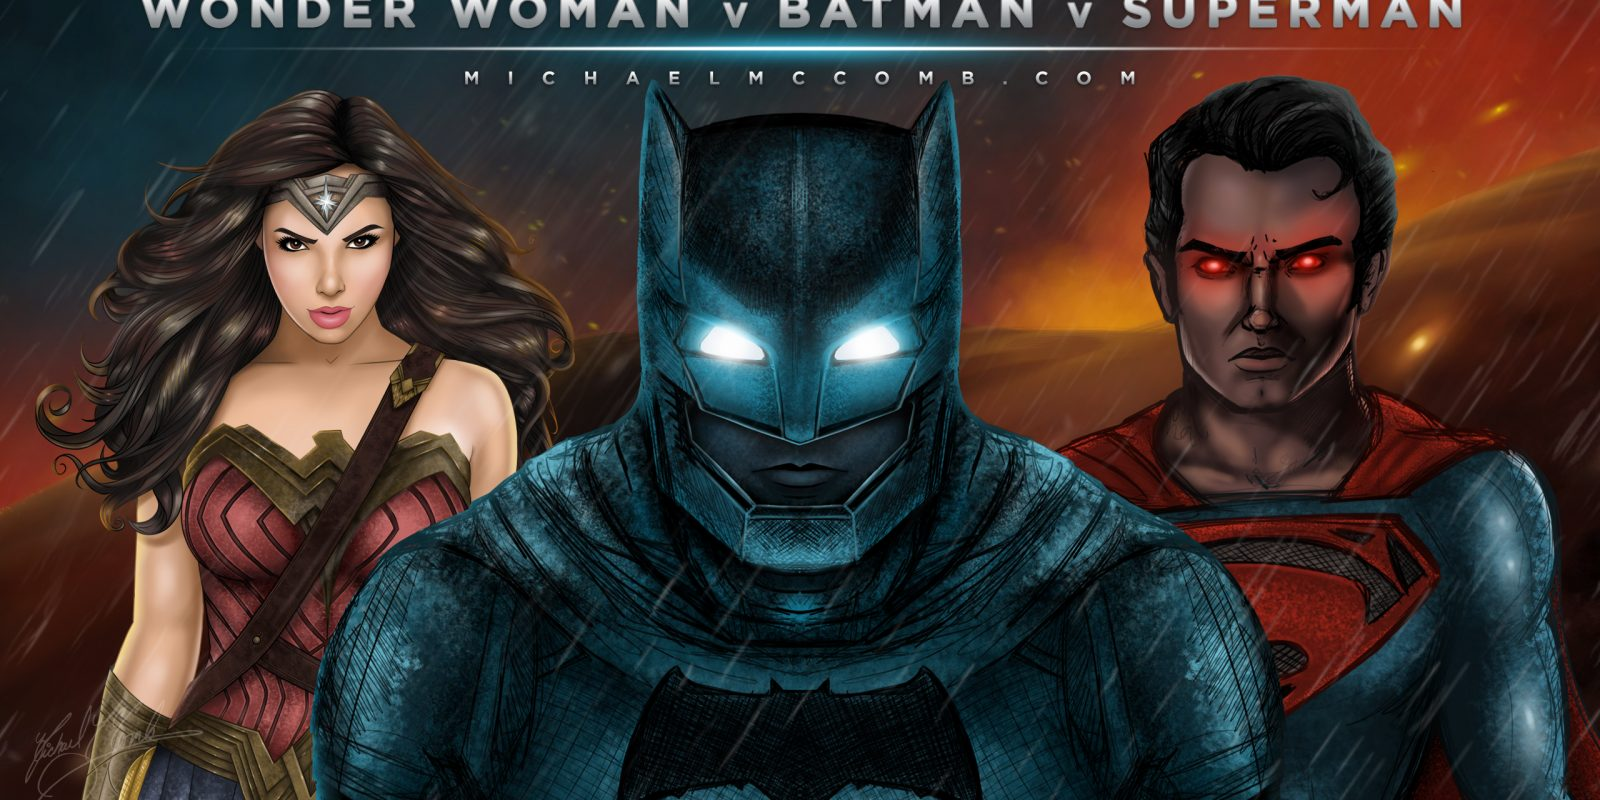 batman v superman wonder woman dawn of justice